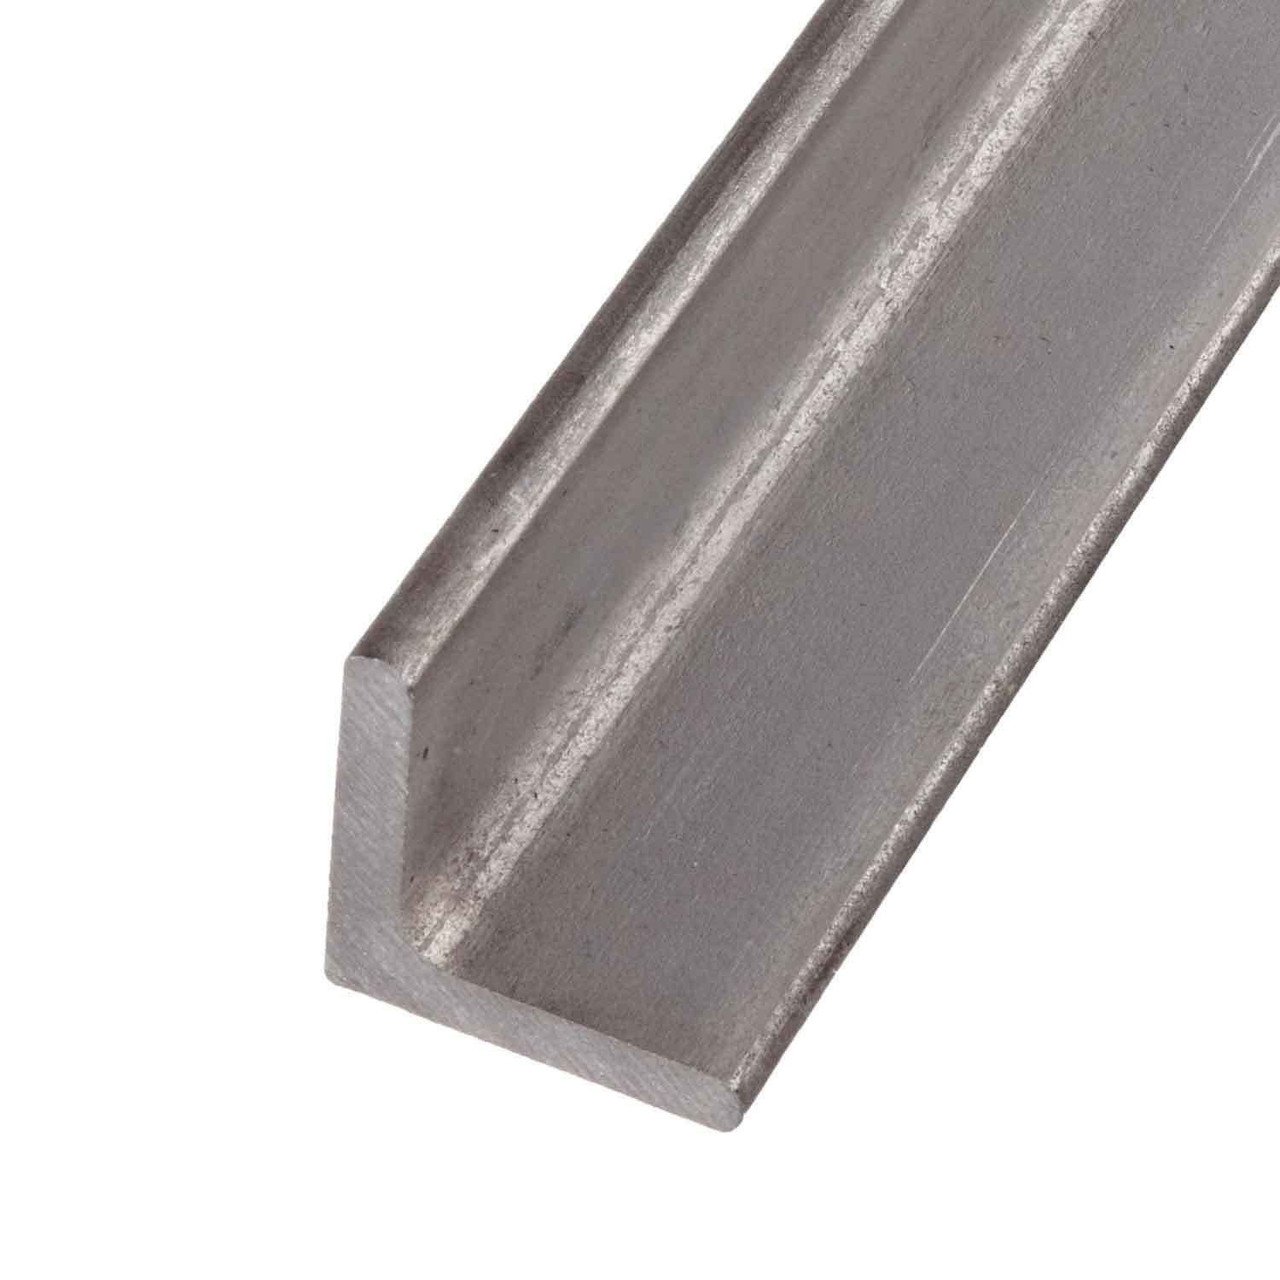 """304 Stainless Steel Angle, 2.5"""" x 2.5"""" x 0.250"""" x 24 inches"""